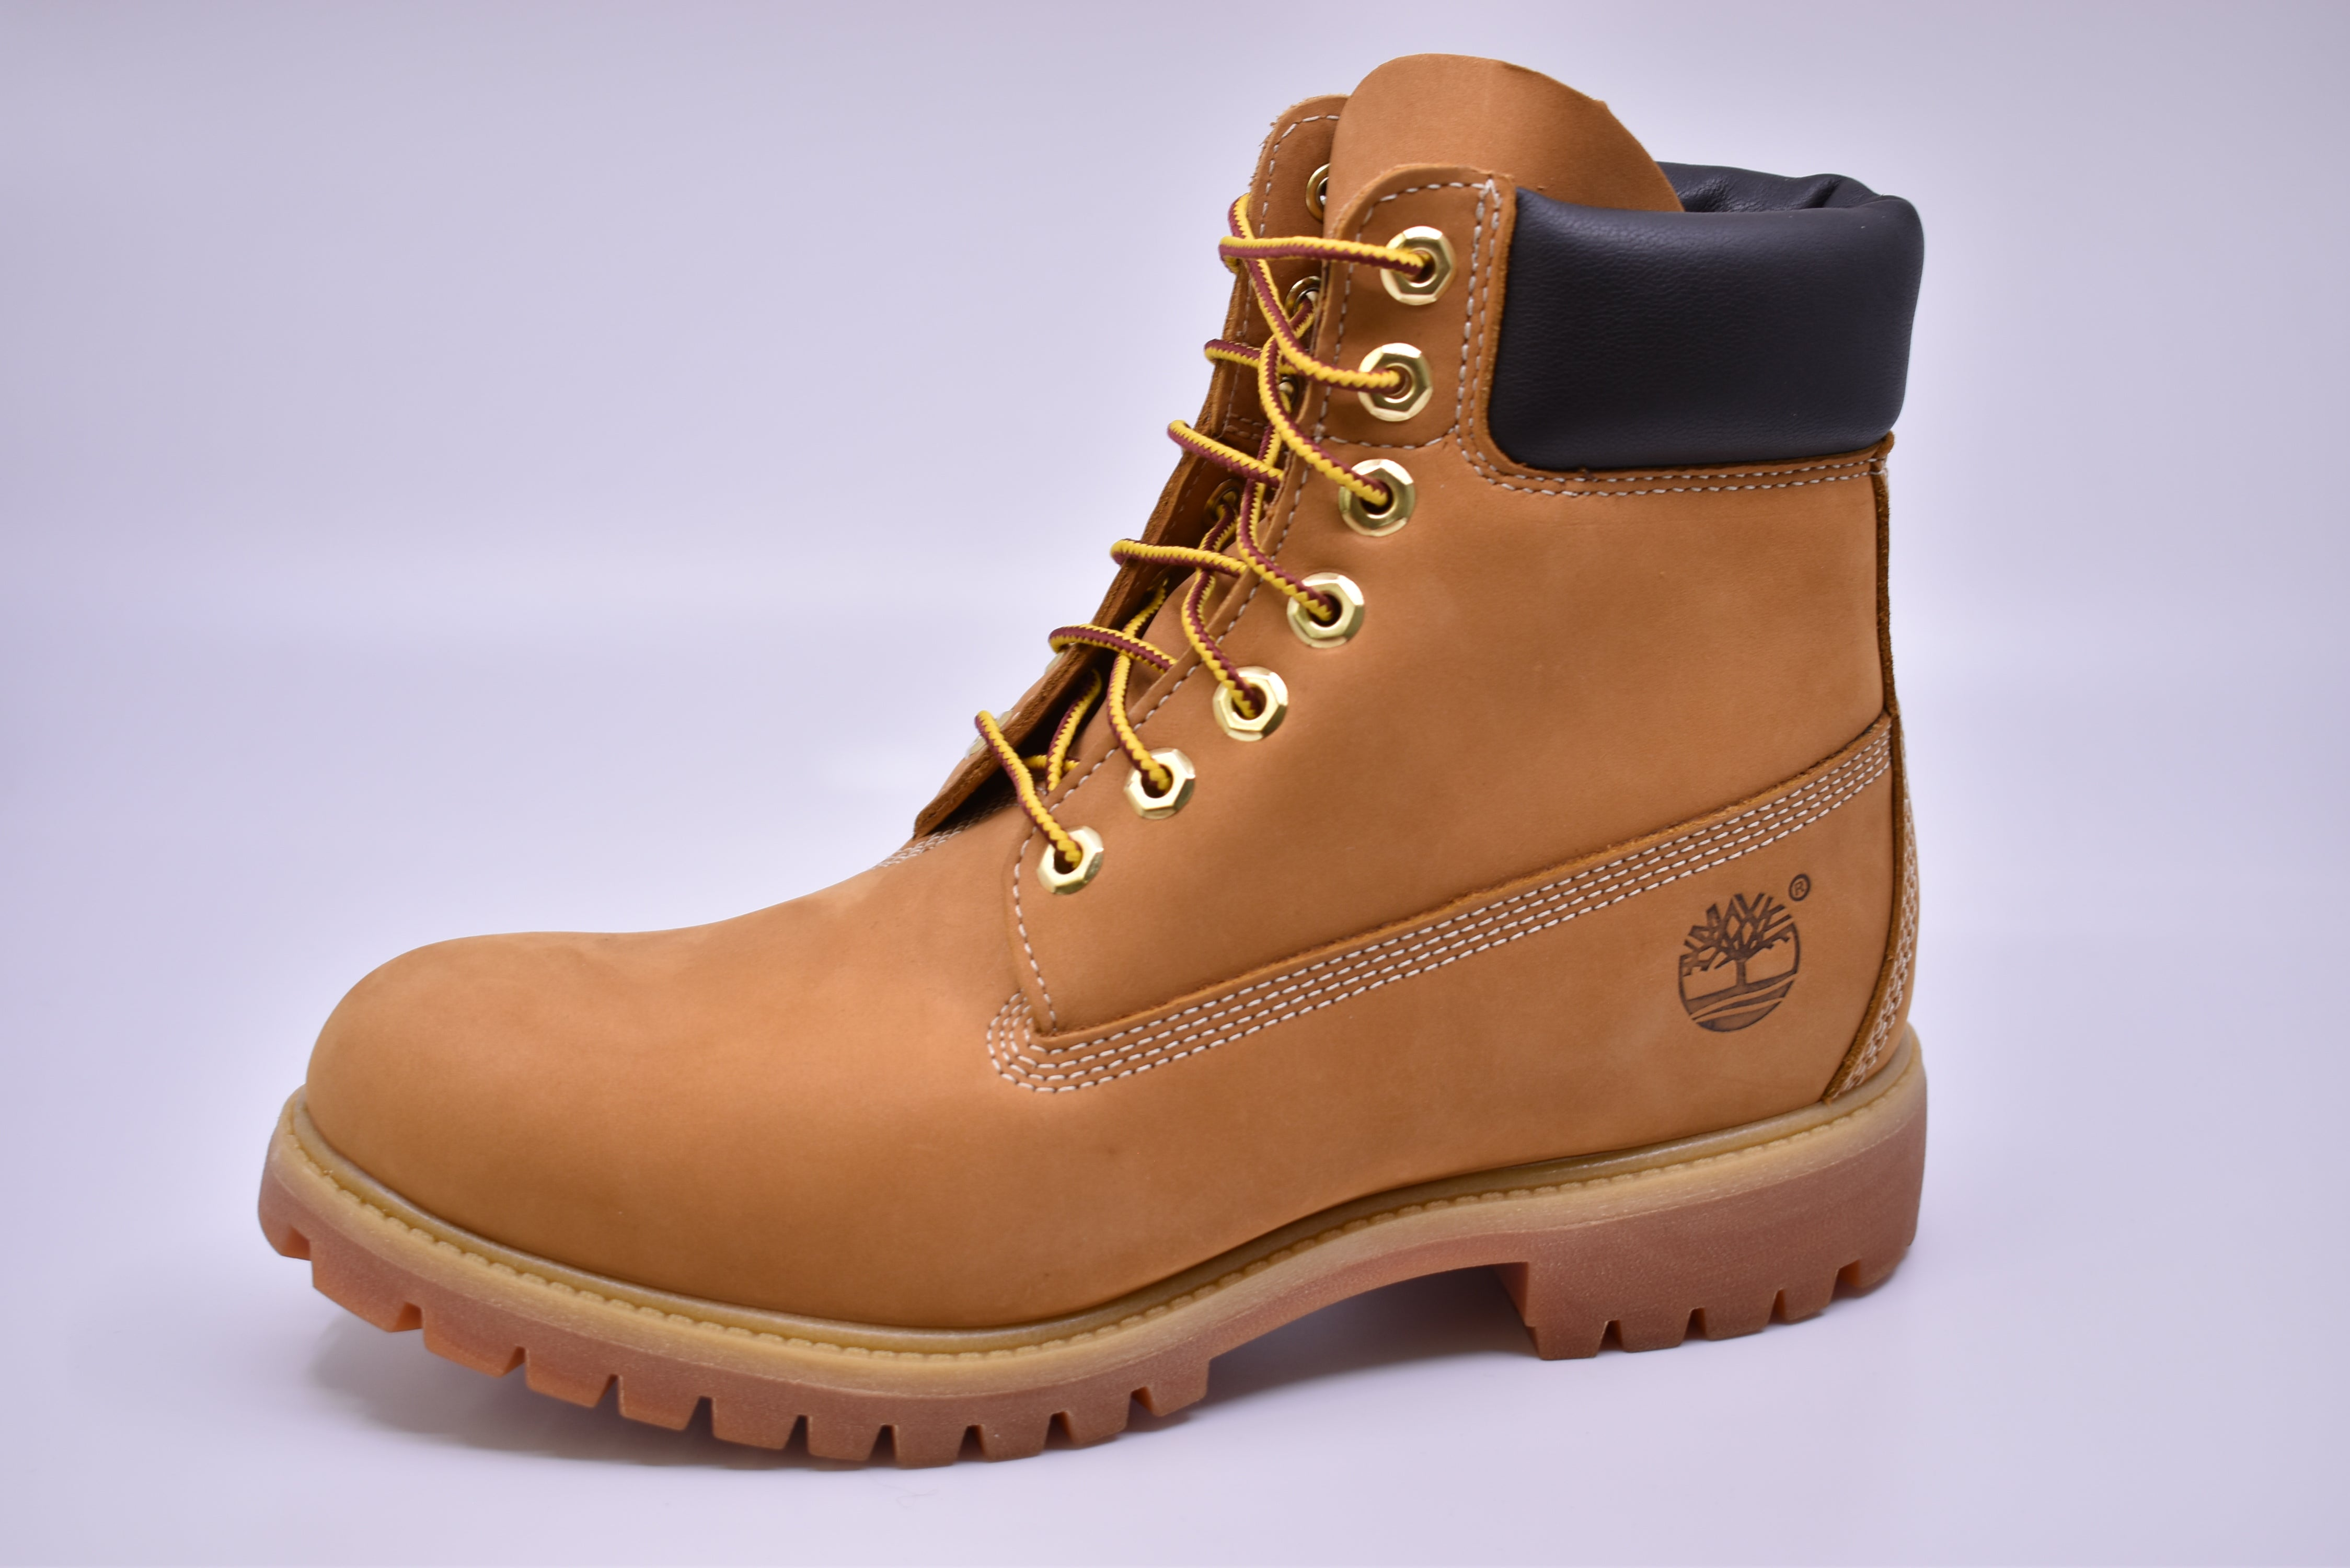 Bottillons Timberland 6 inch Premium Homme